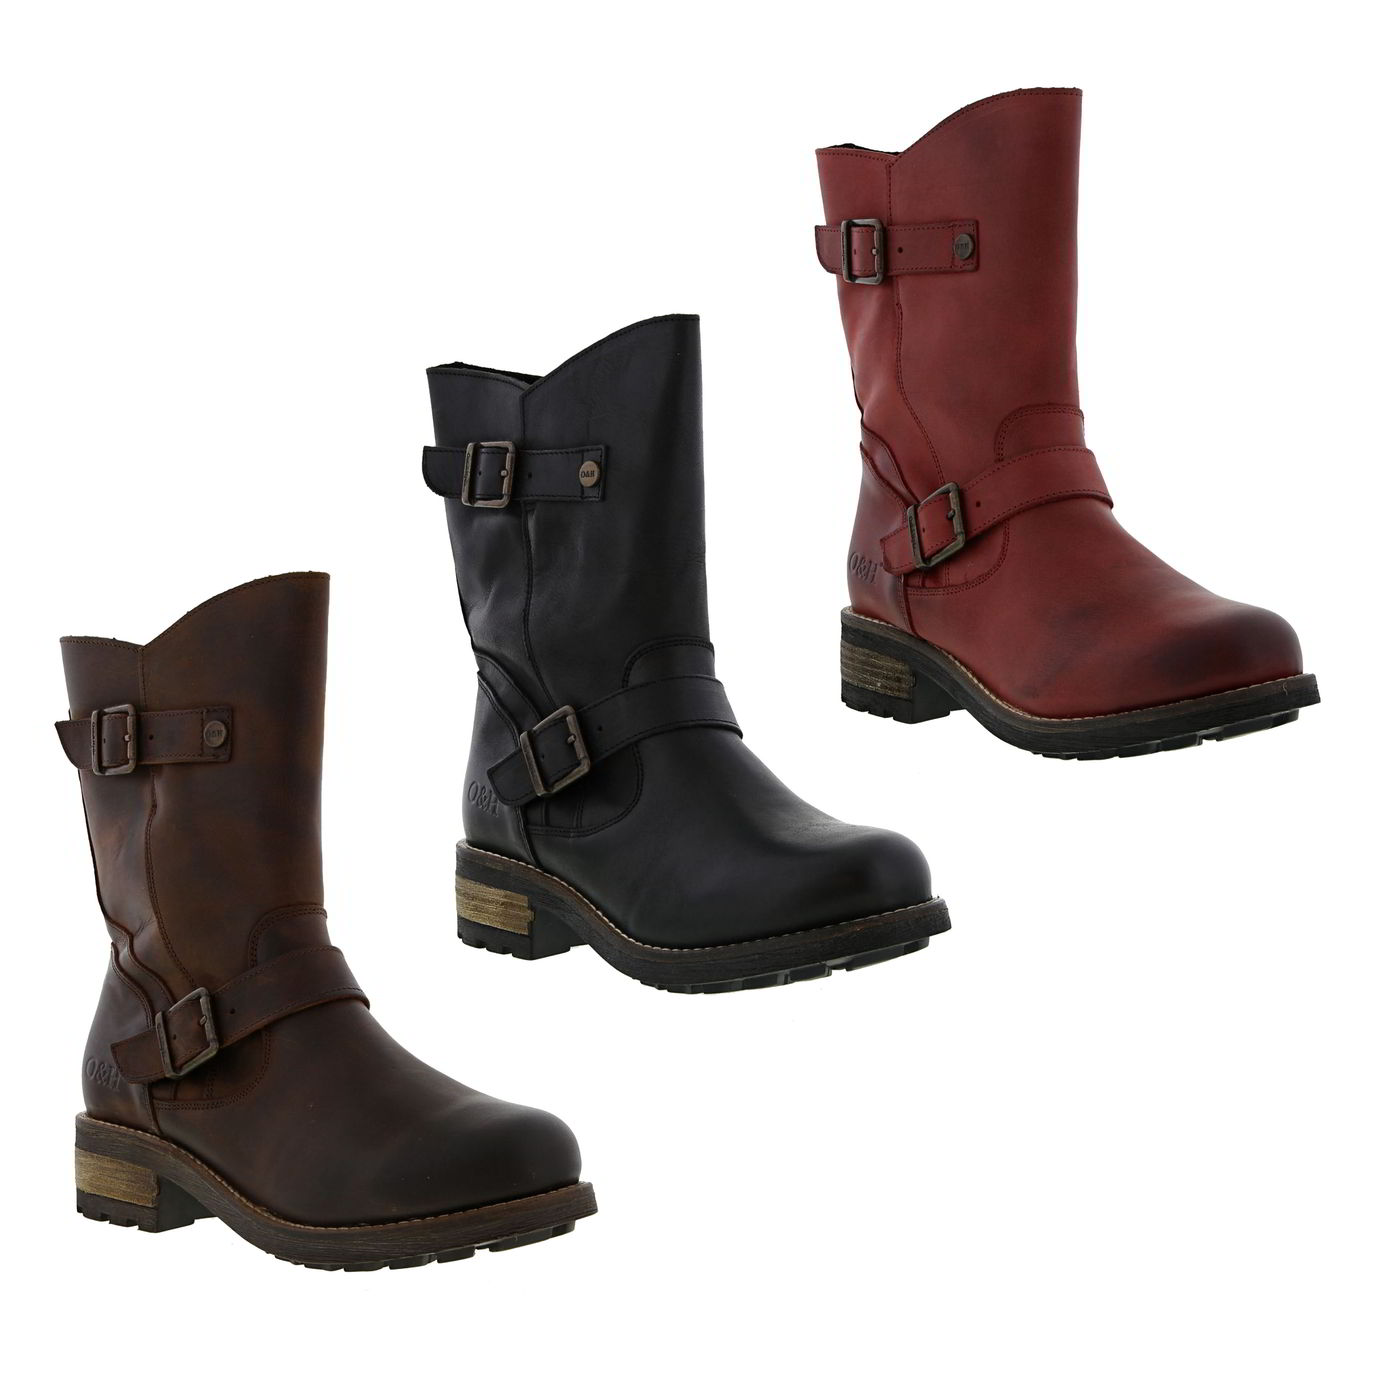 0893a470d22 Details about Oak and Hyde Crest Demi Womens Ladies Black Brown Red Biker  Zip Boots Size 4-9